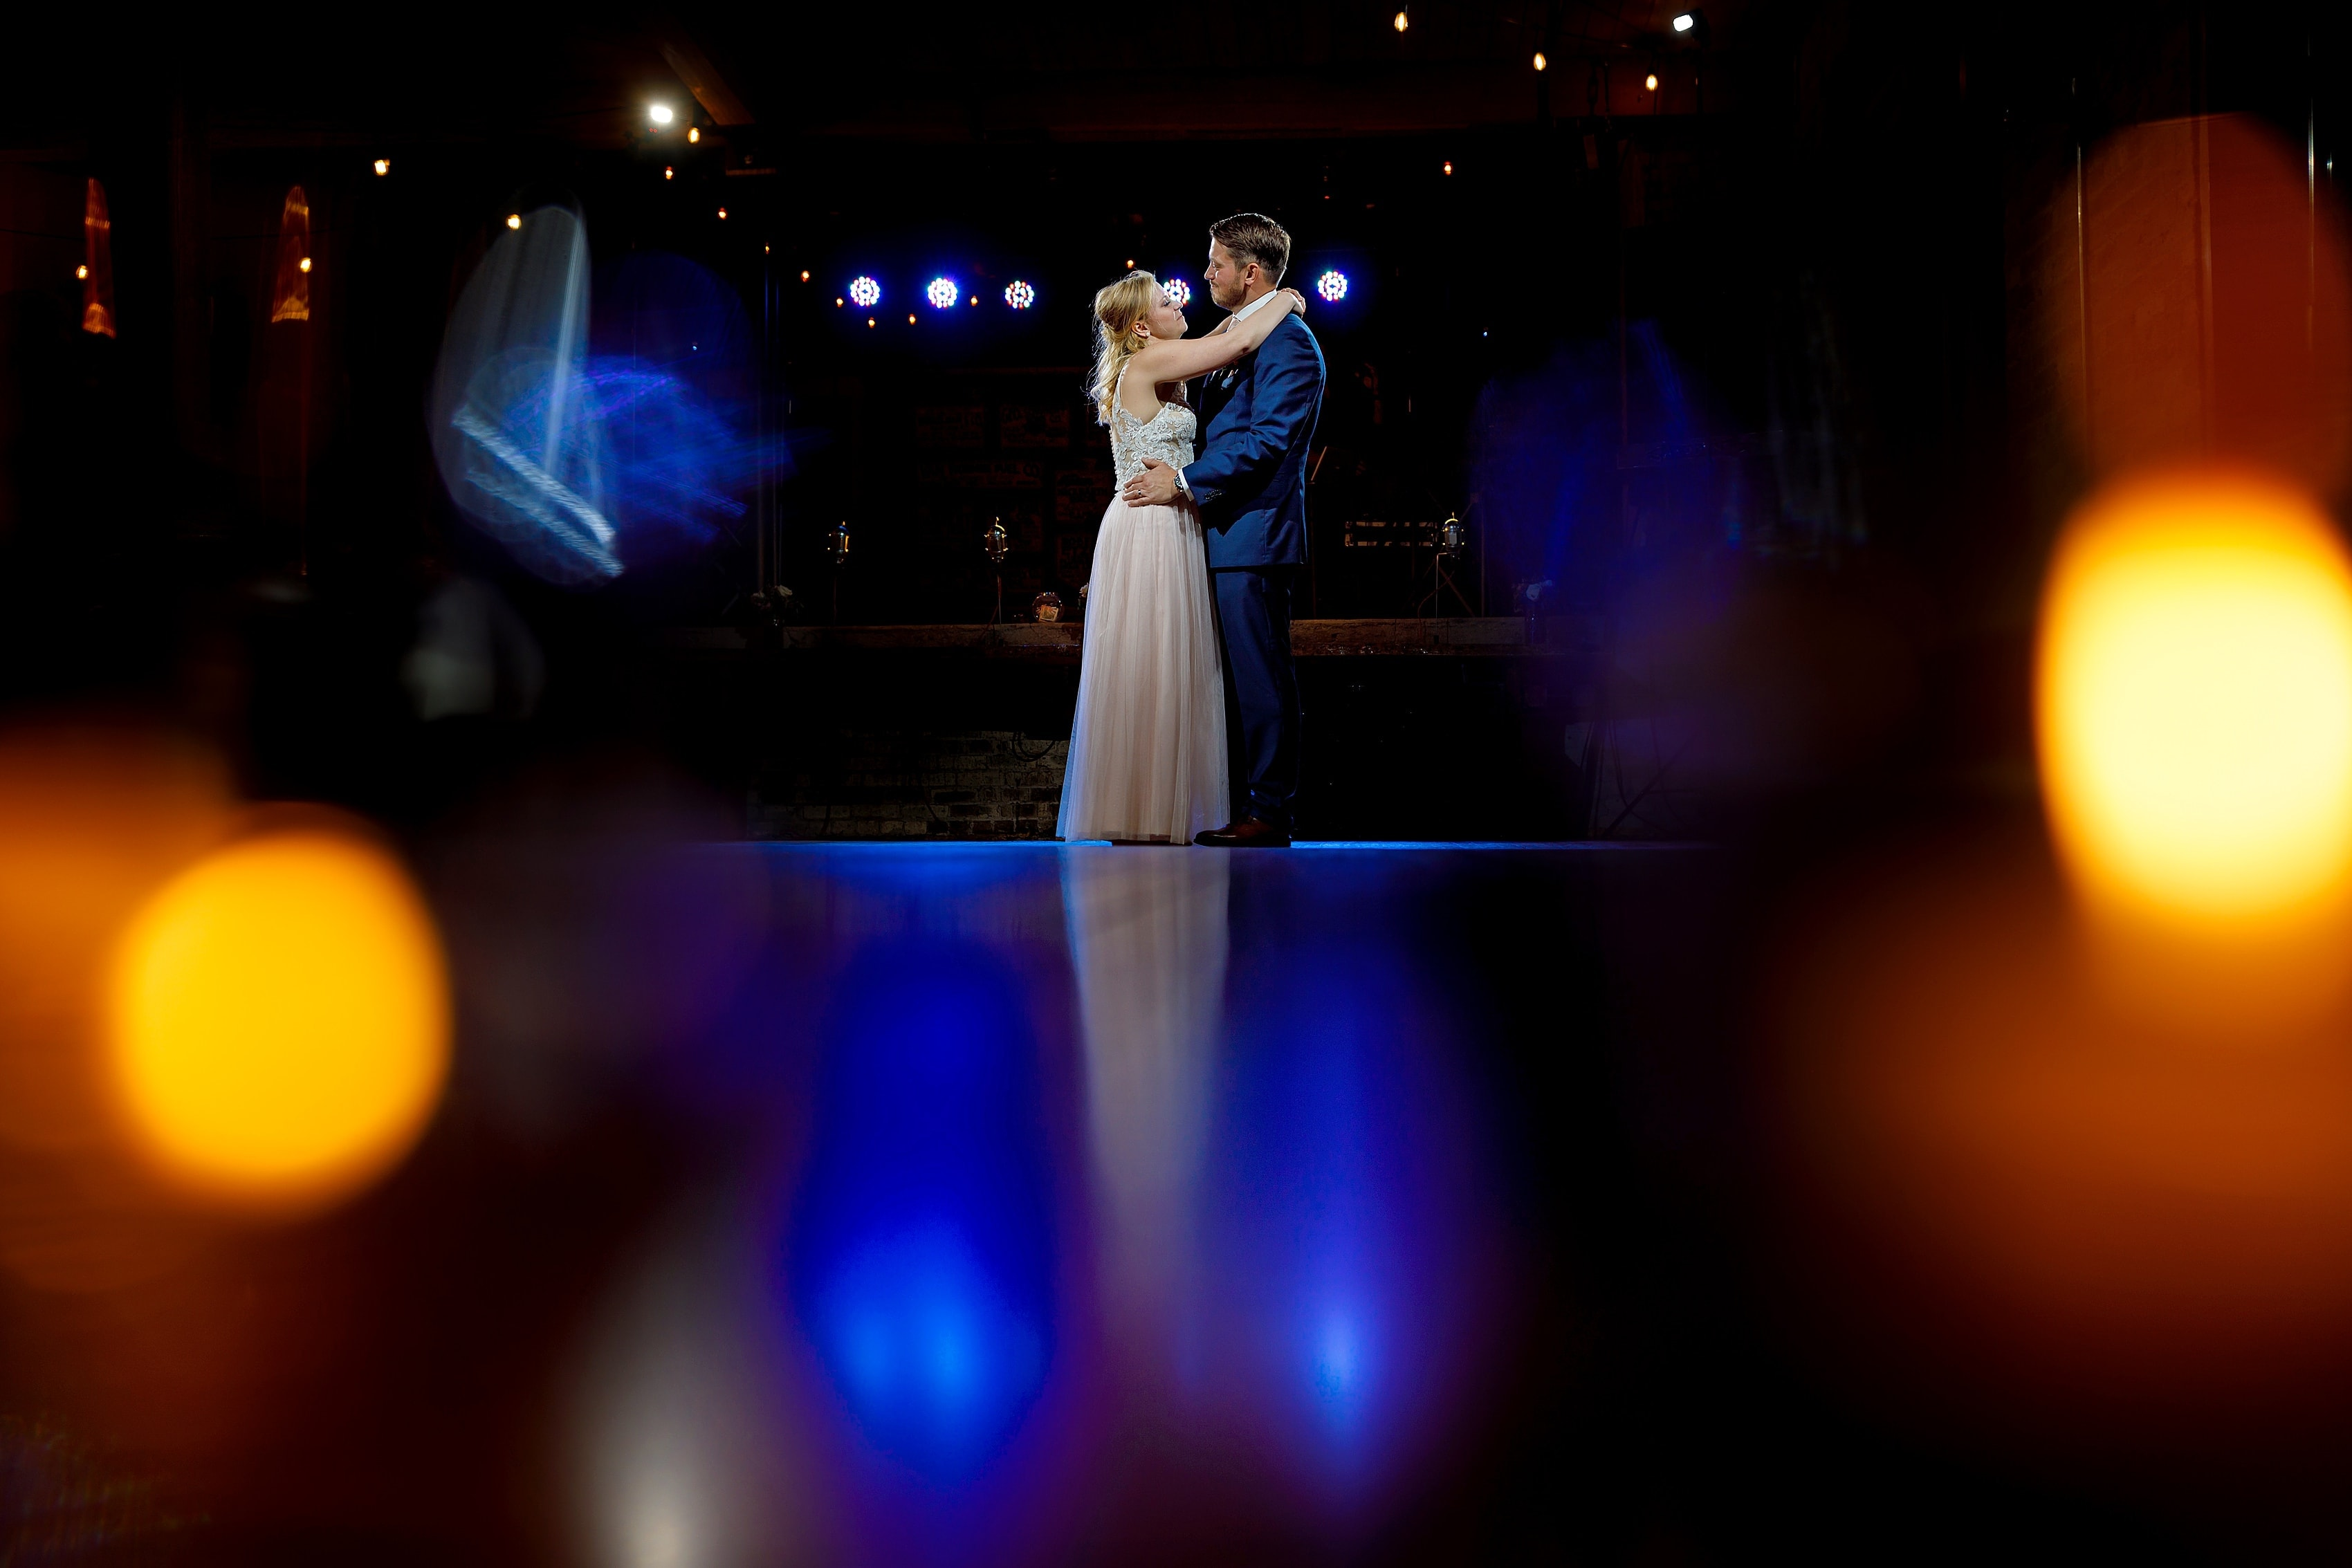 wedding Couple first dance during reception at Anodyne coffee roasting co. in Milwaukee Wisconsin